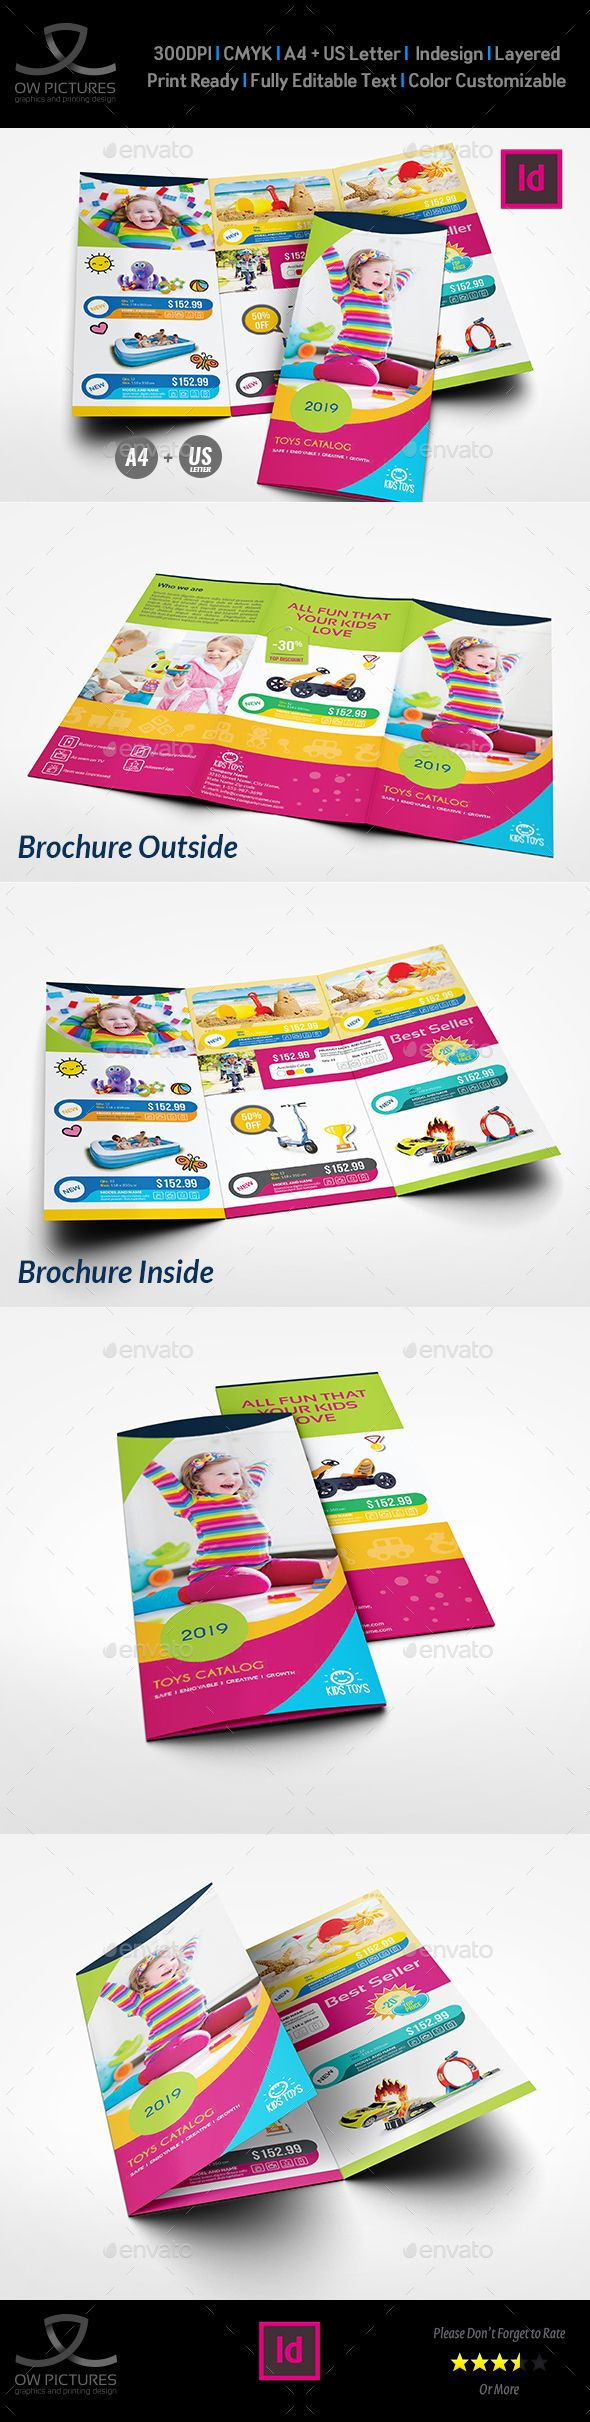 toys products catalog tri fold brochure template brochure